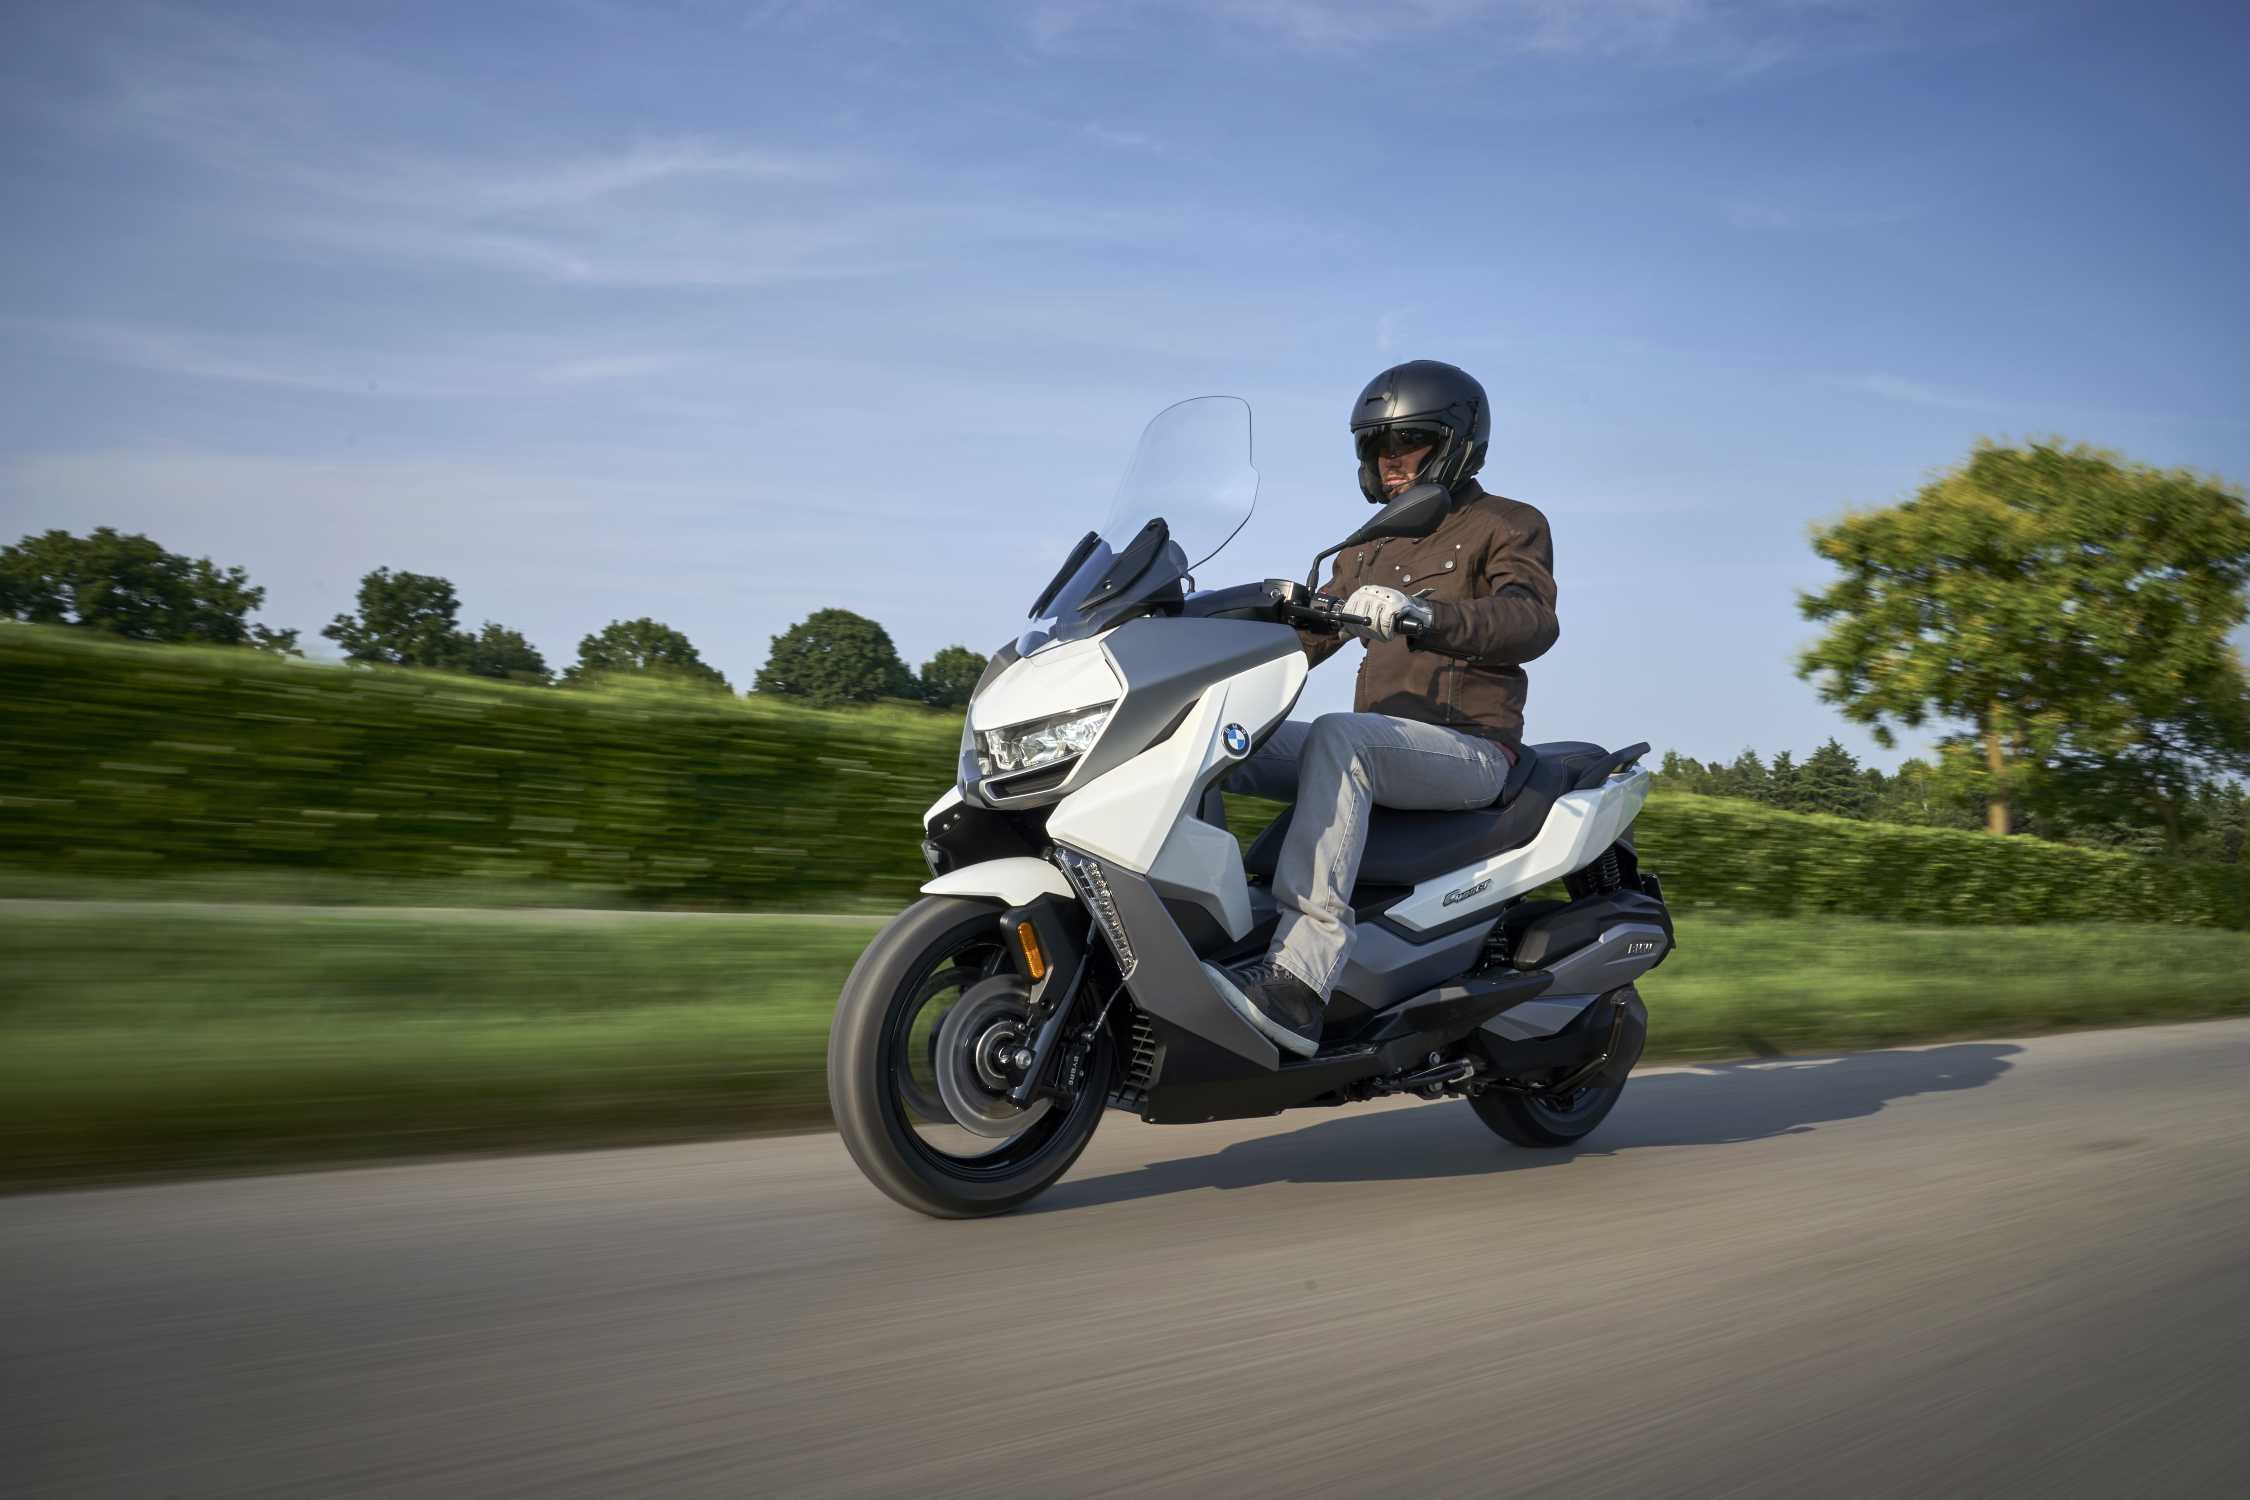 The new BMW C 400 GT